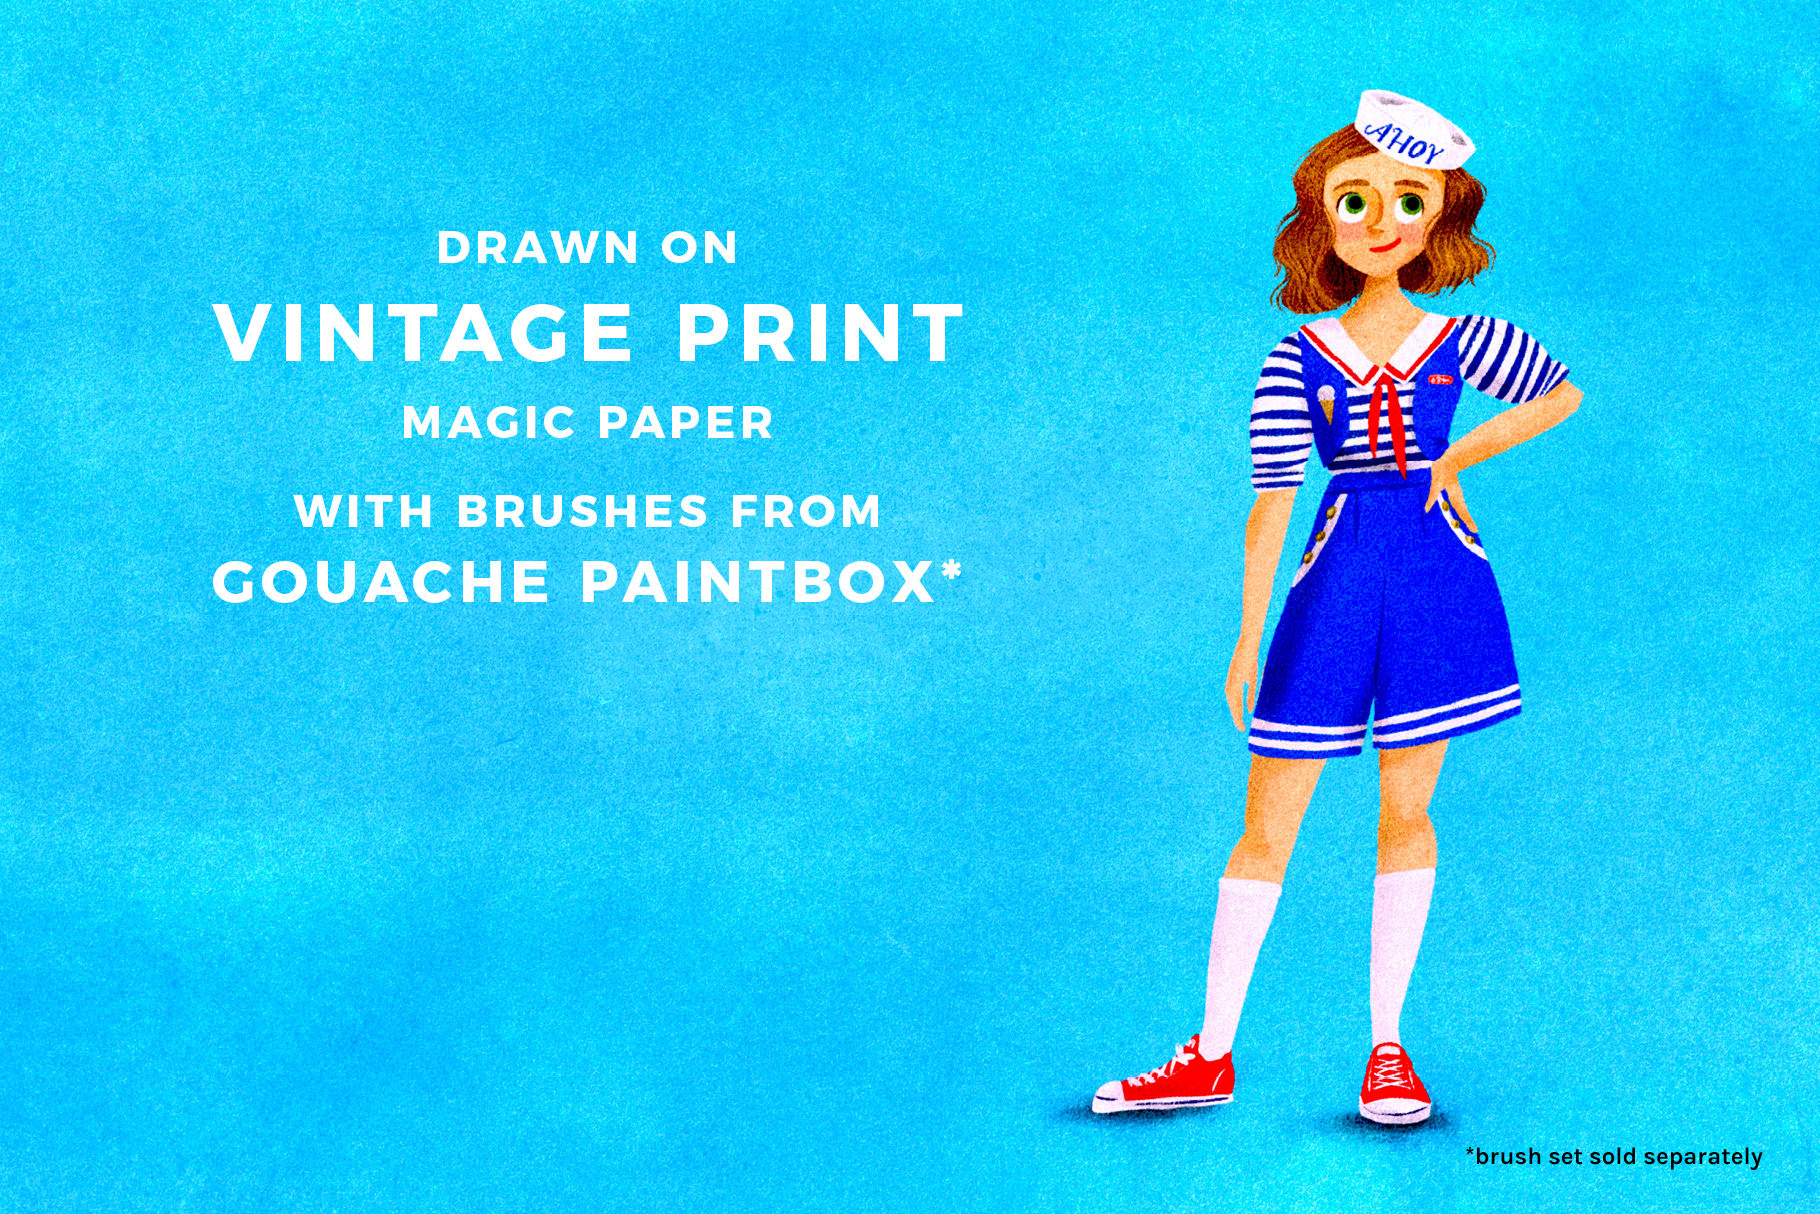 Bardot Brush Magic Paper 19